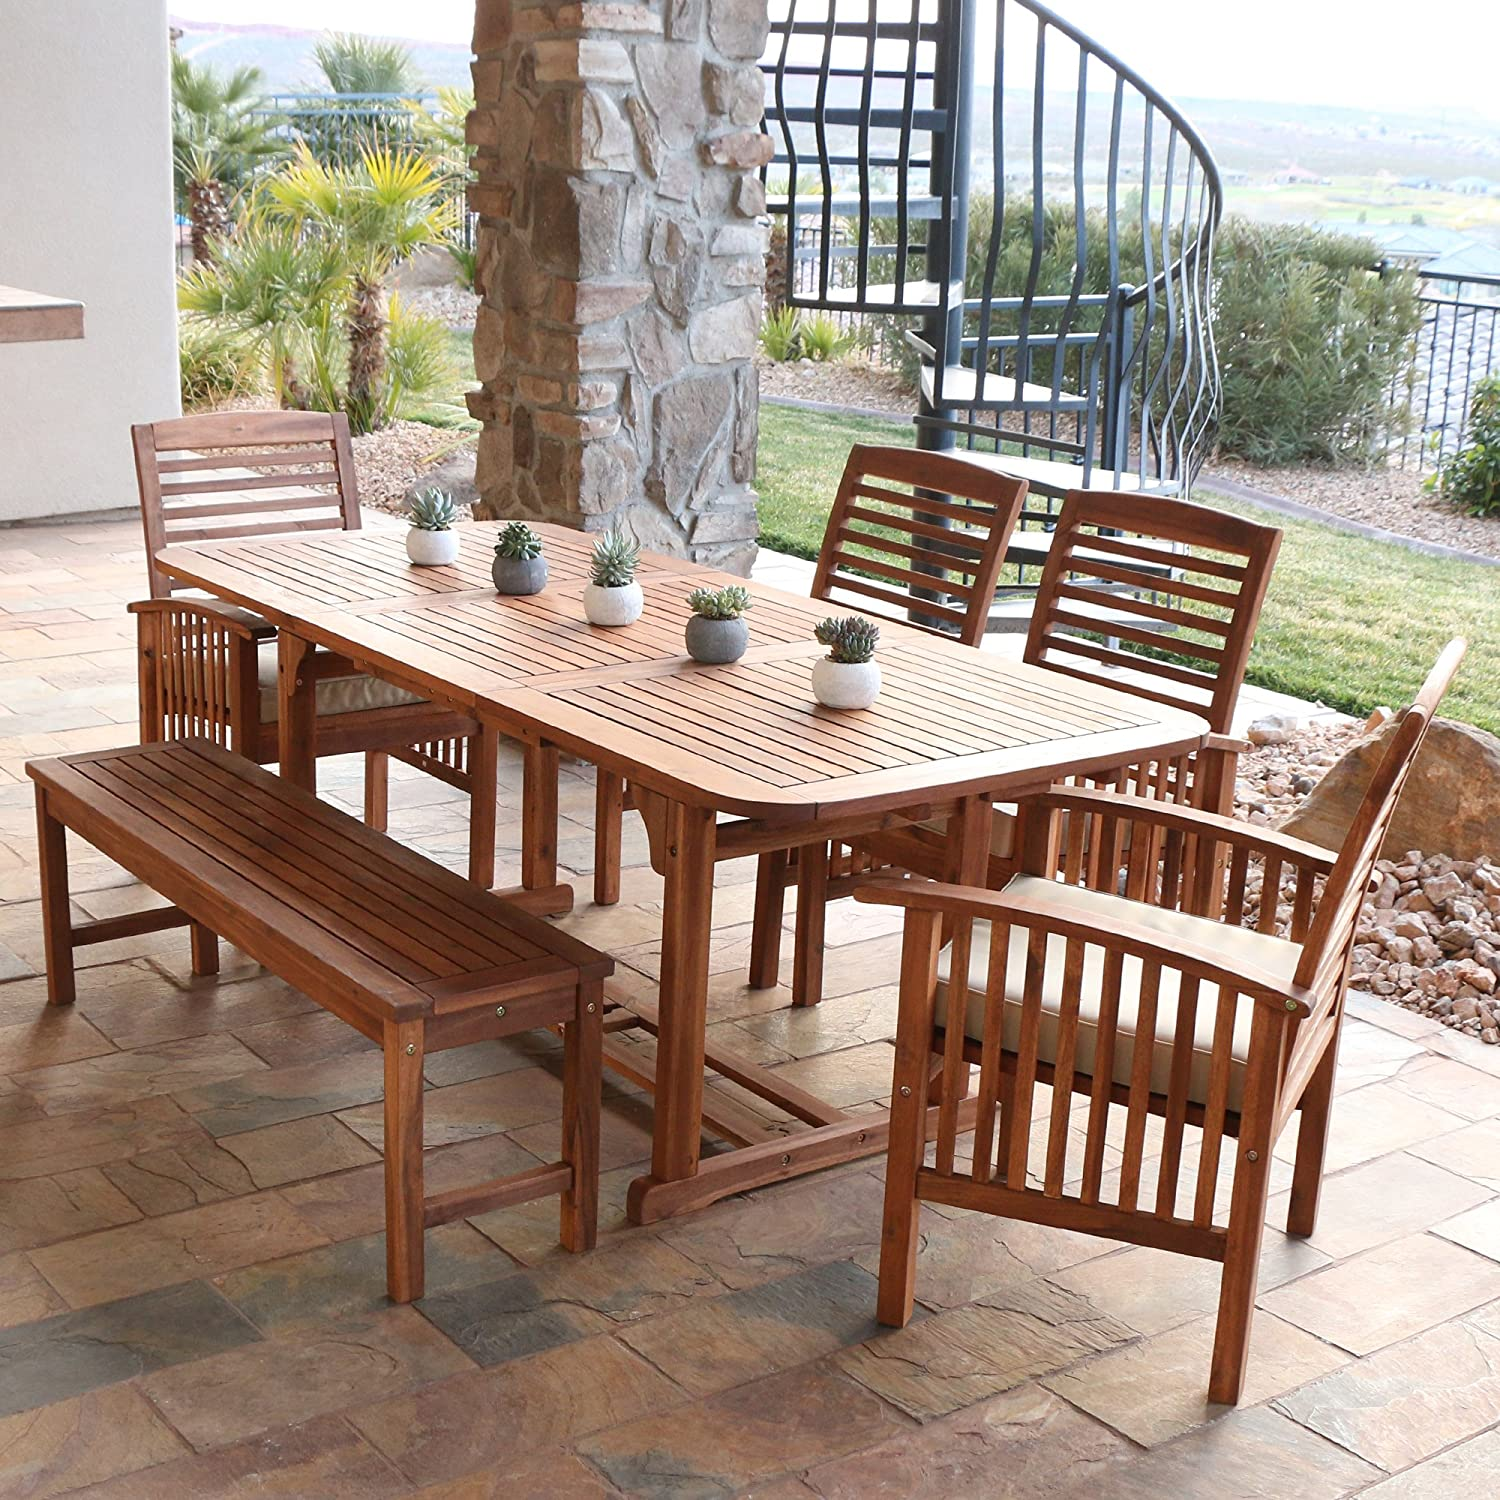 dining luxury all patio set aerin furniture weather wicker collection person